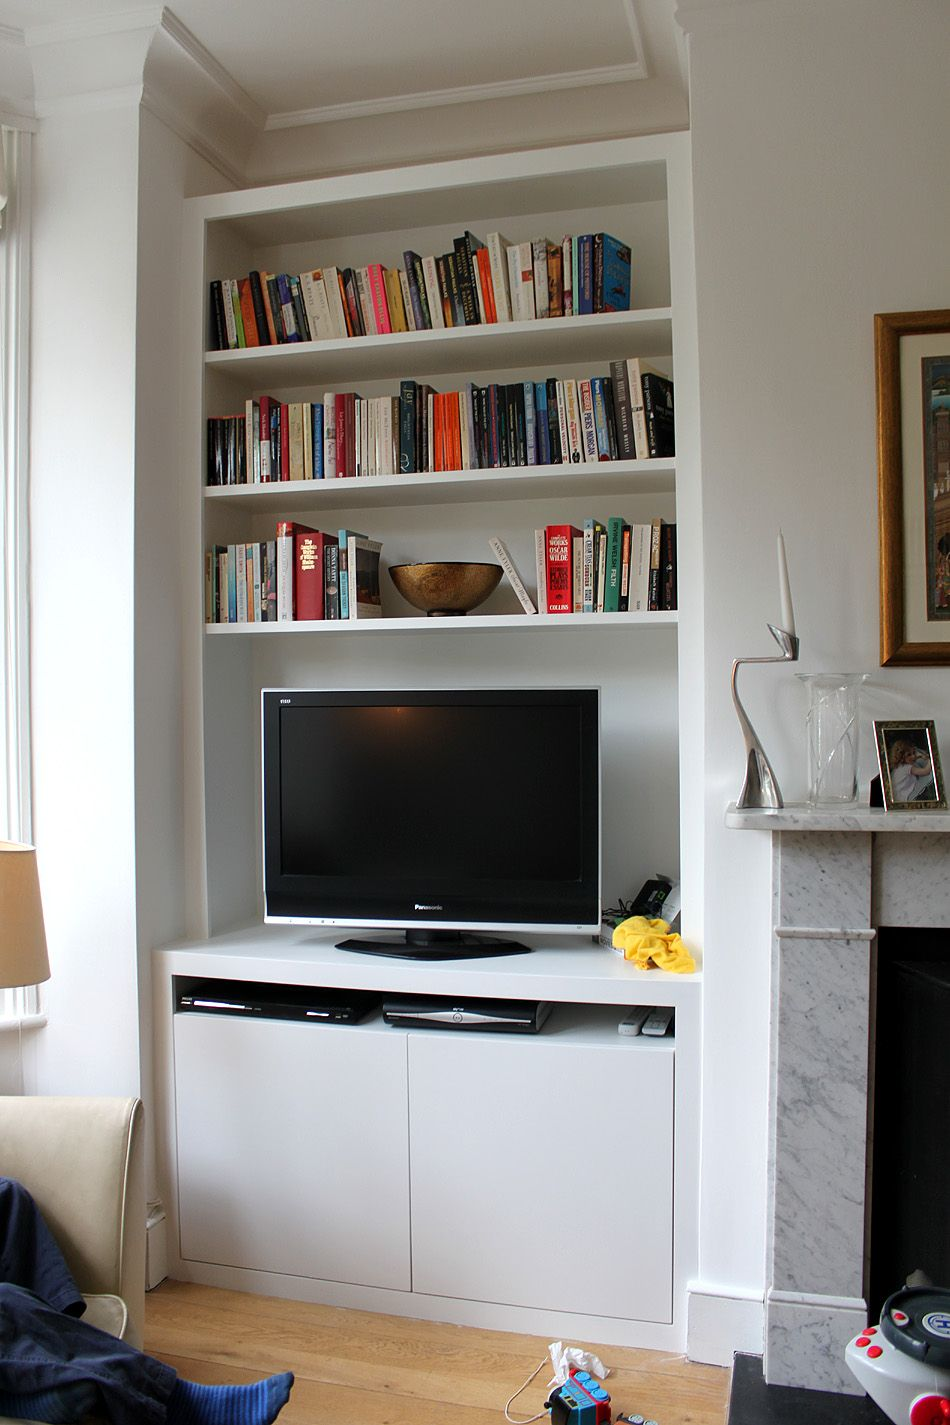 Ed Wardrobes Bookcases Shelving Floating Shelves London Bookshelves Custom Made Tv Cupboards And Cabinets Bespoke Mdf Furniture To Measure In